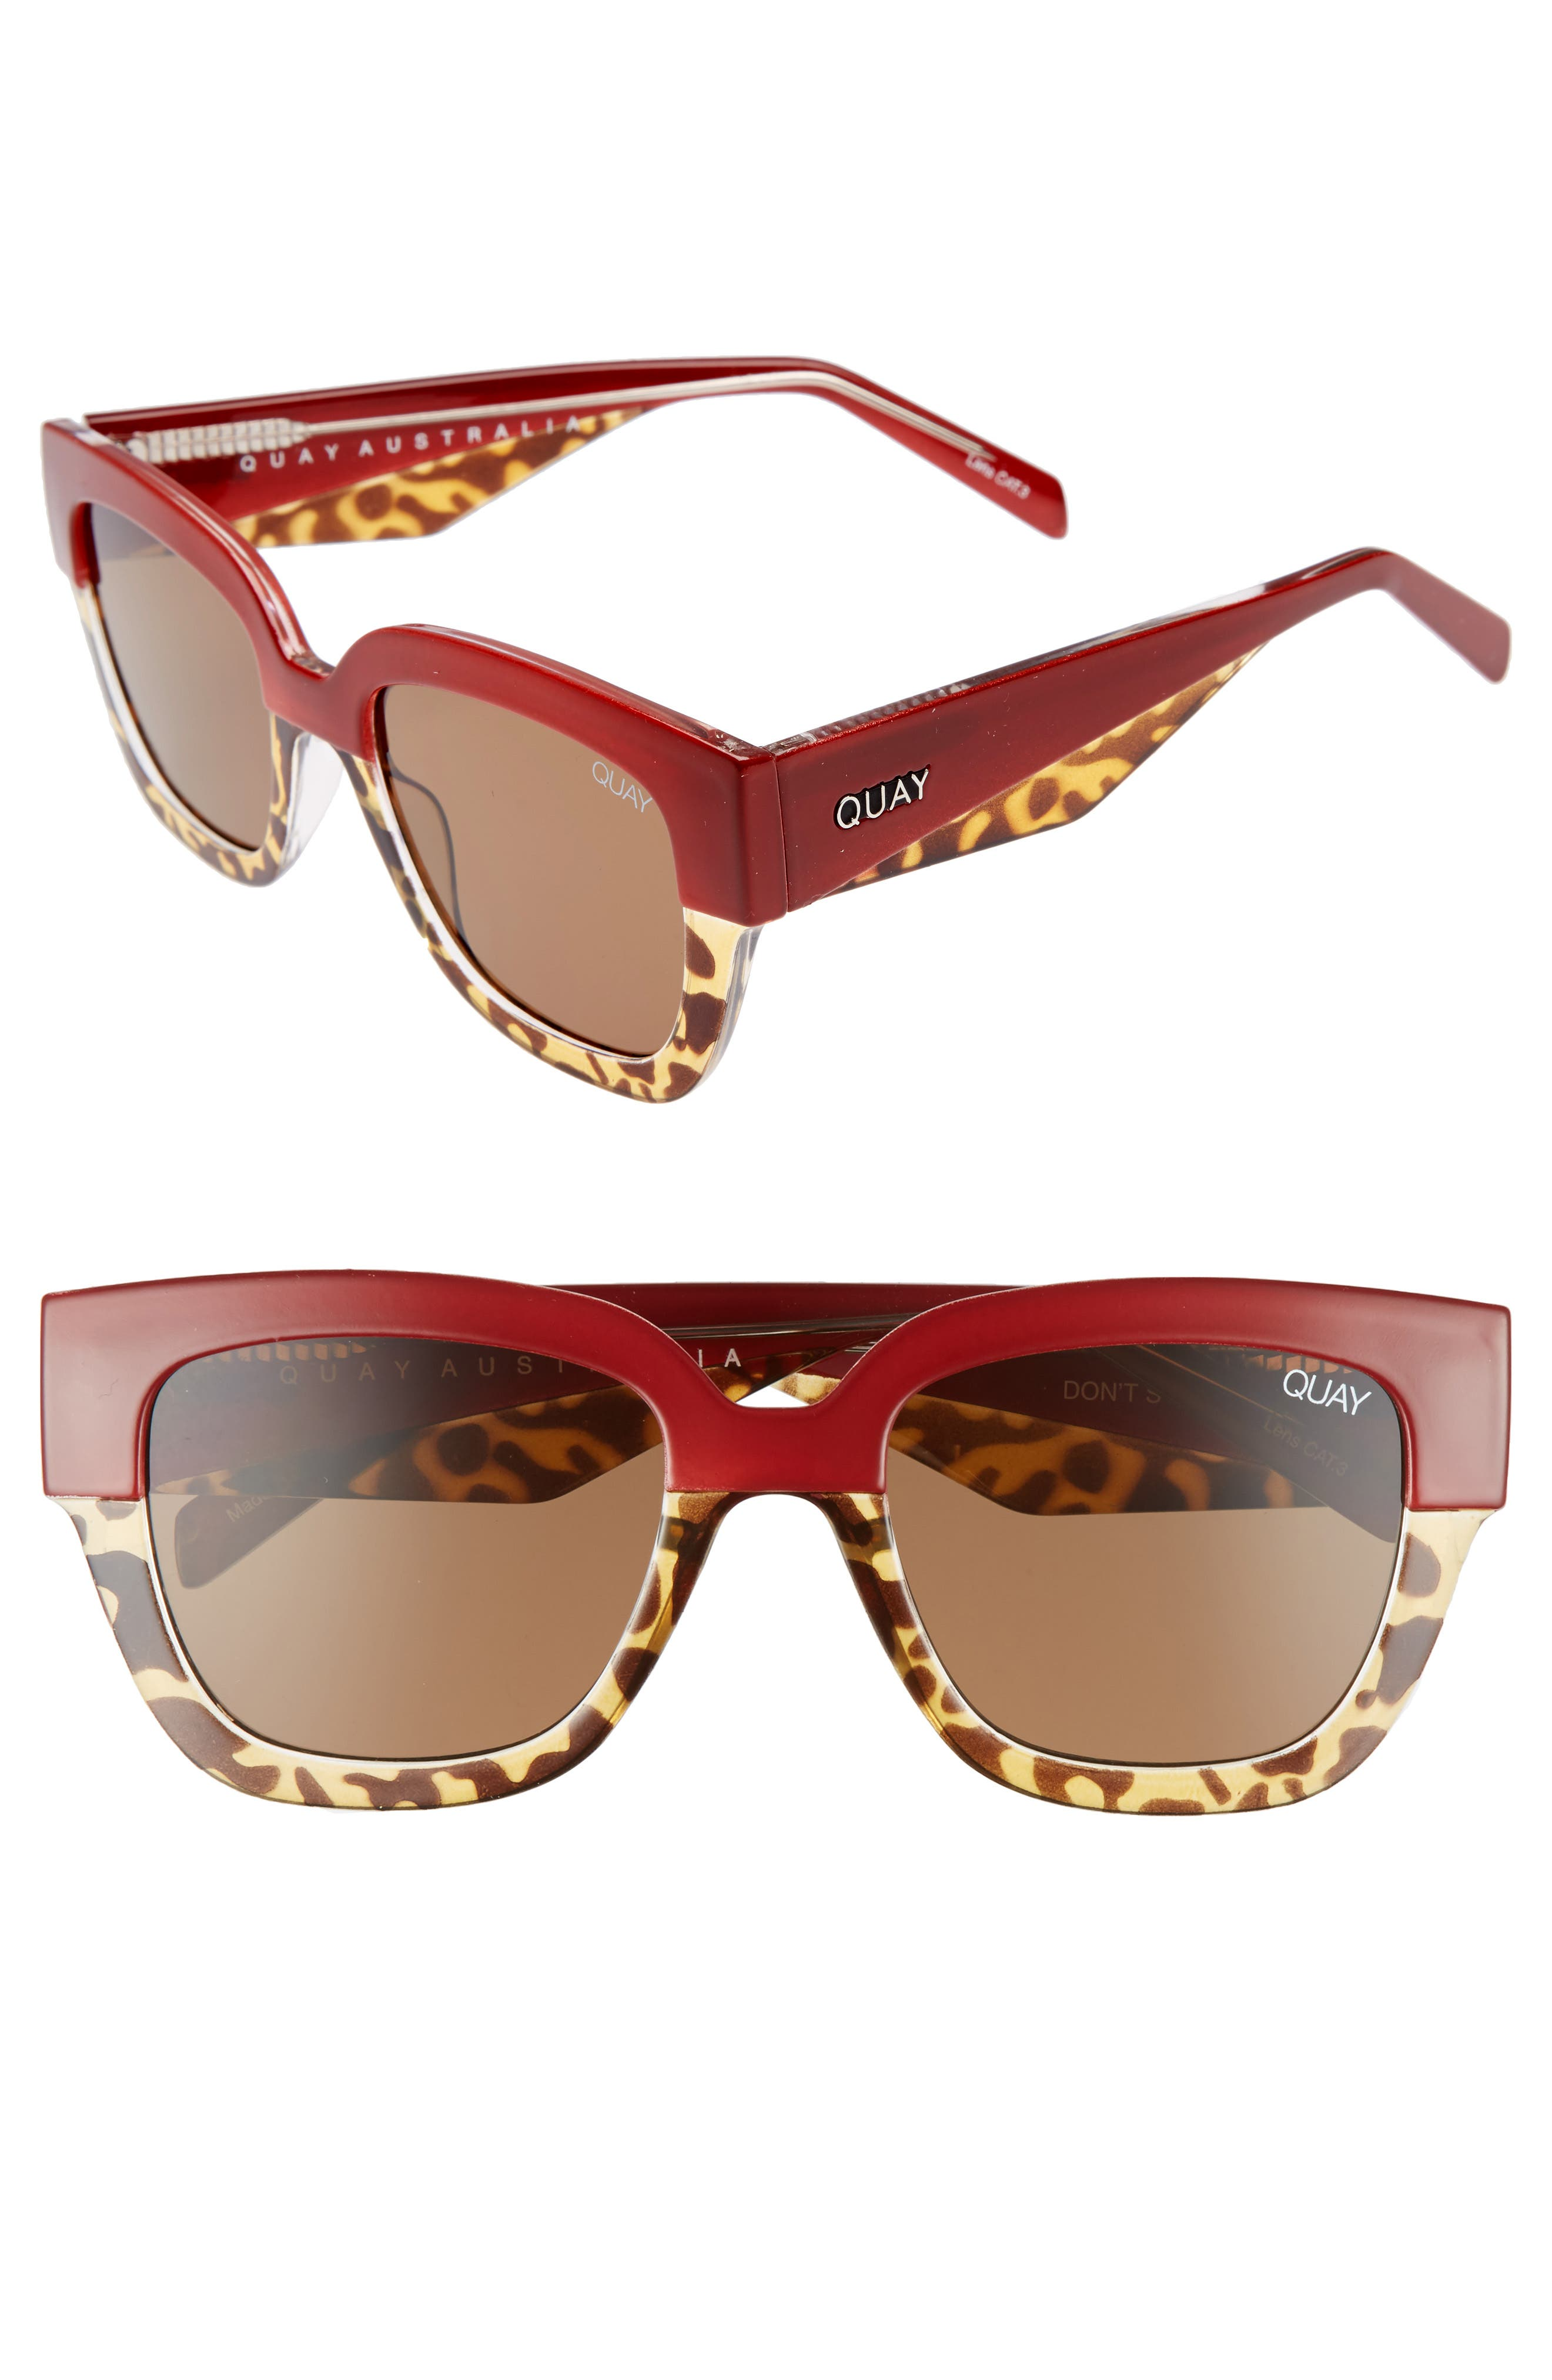 55mm Don't Stop Sunglasses,                             Main thumbnail 1, color,                             Red/ Tort/ Brown